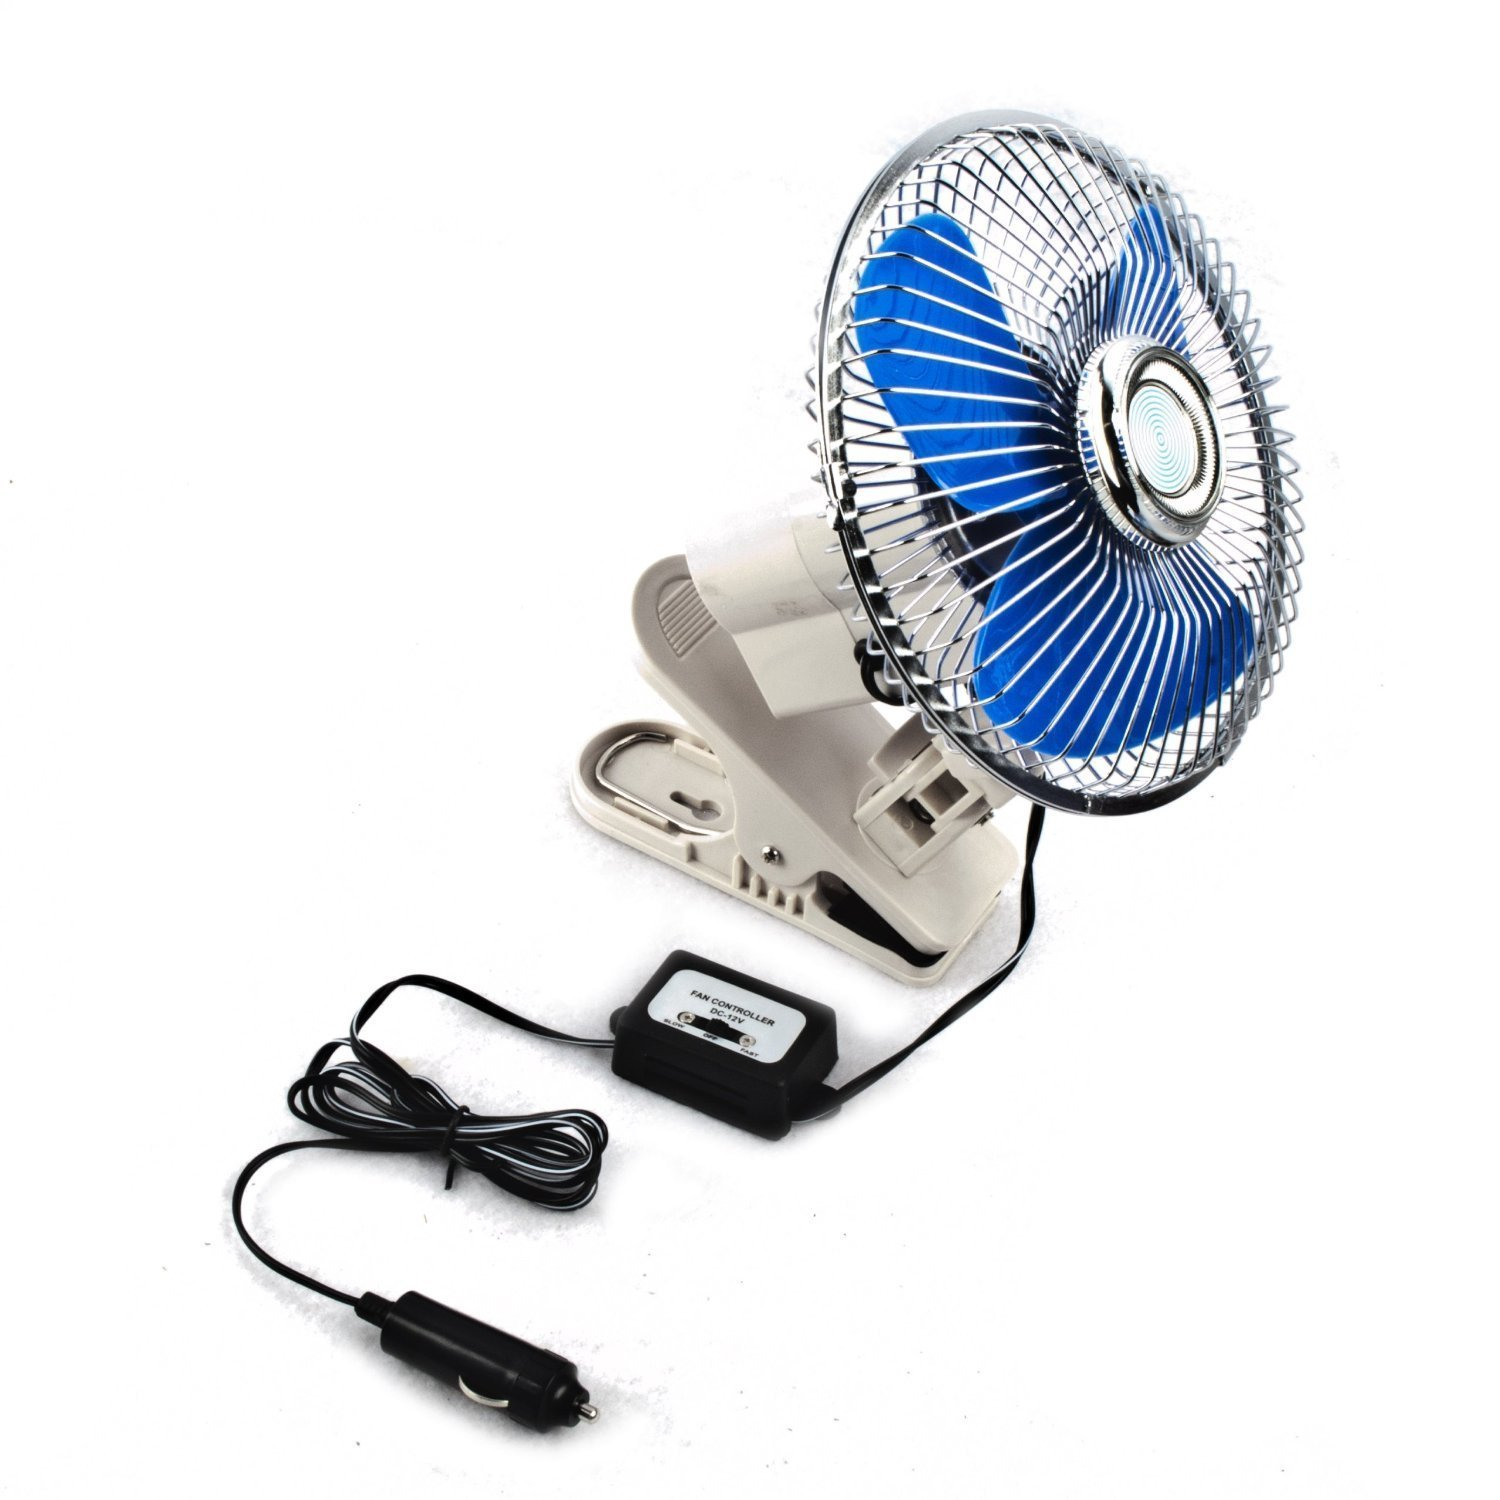 ALEKO CFD01 Mini Clip On Dashboard Electric Car Fan for Summer Road Trips 6 Inch Blades 12V Aluminum